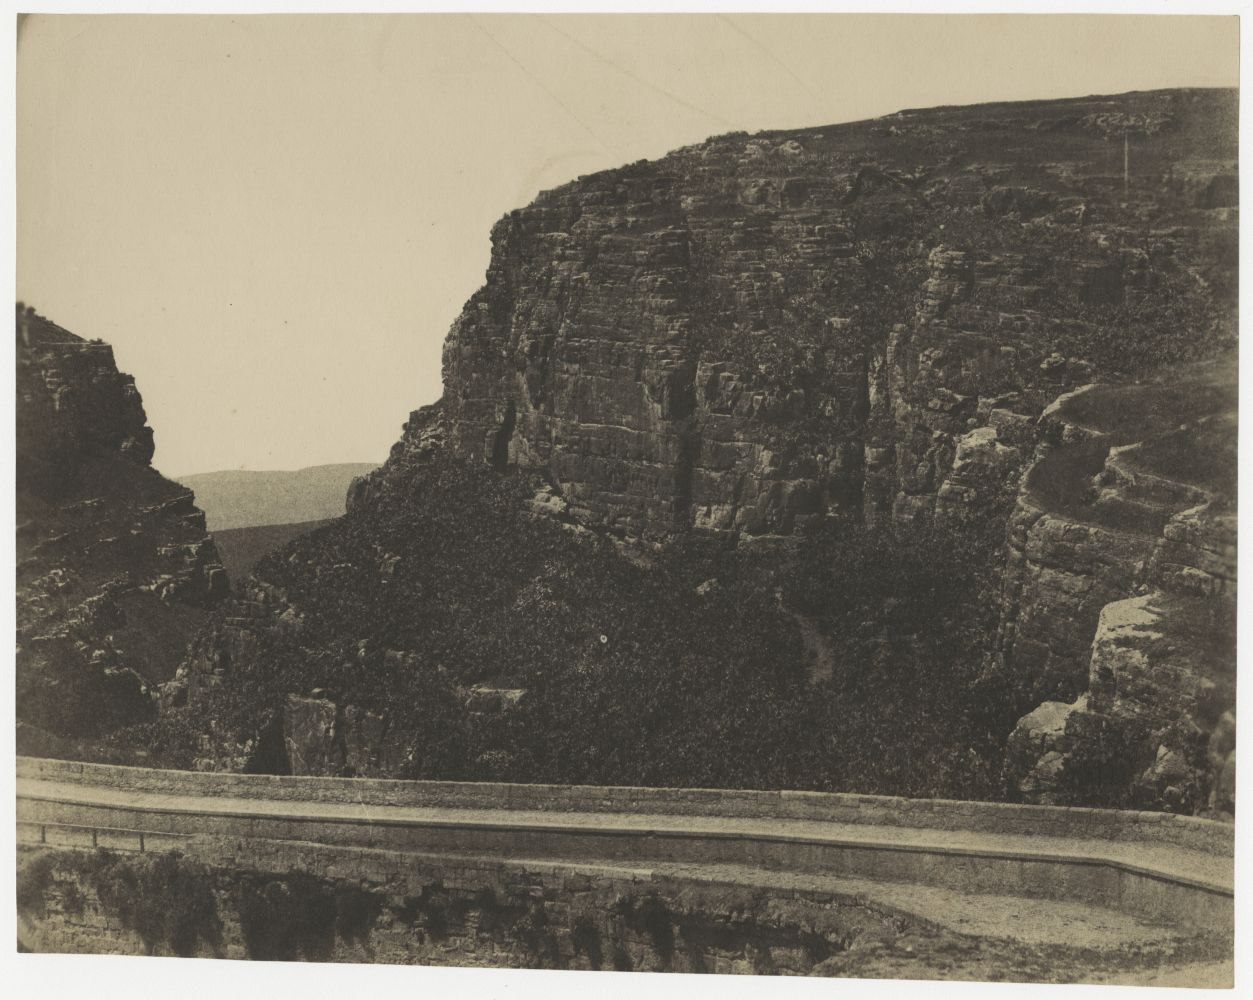 John Beasley GREENE (American, born in France, 1832-1856) El-Kantara Bridge, Constantine, Algeria*, 1855-1856 Lightly coated salt print from a paper negative 23.5 x 29.4 cm